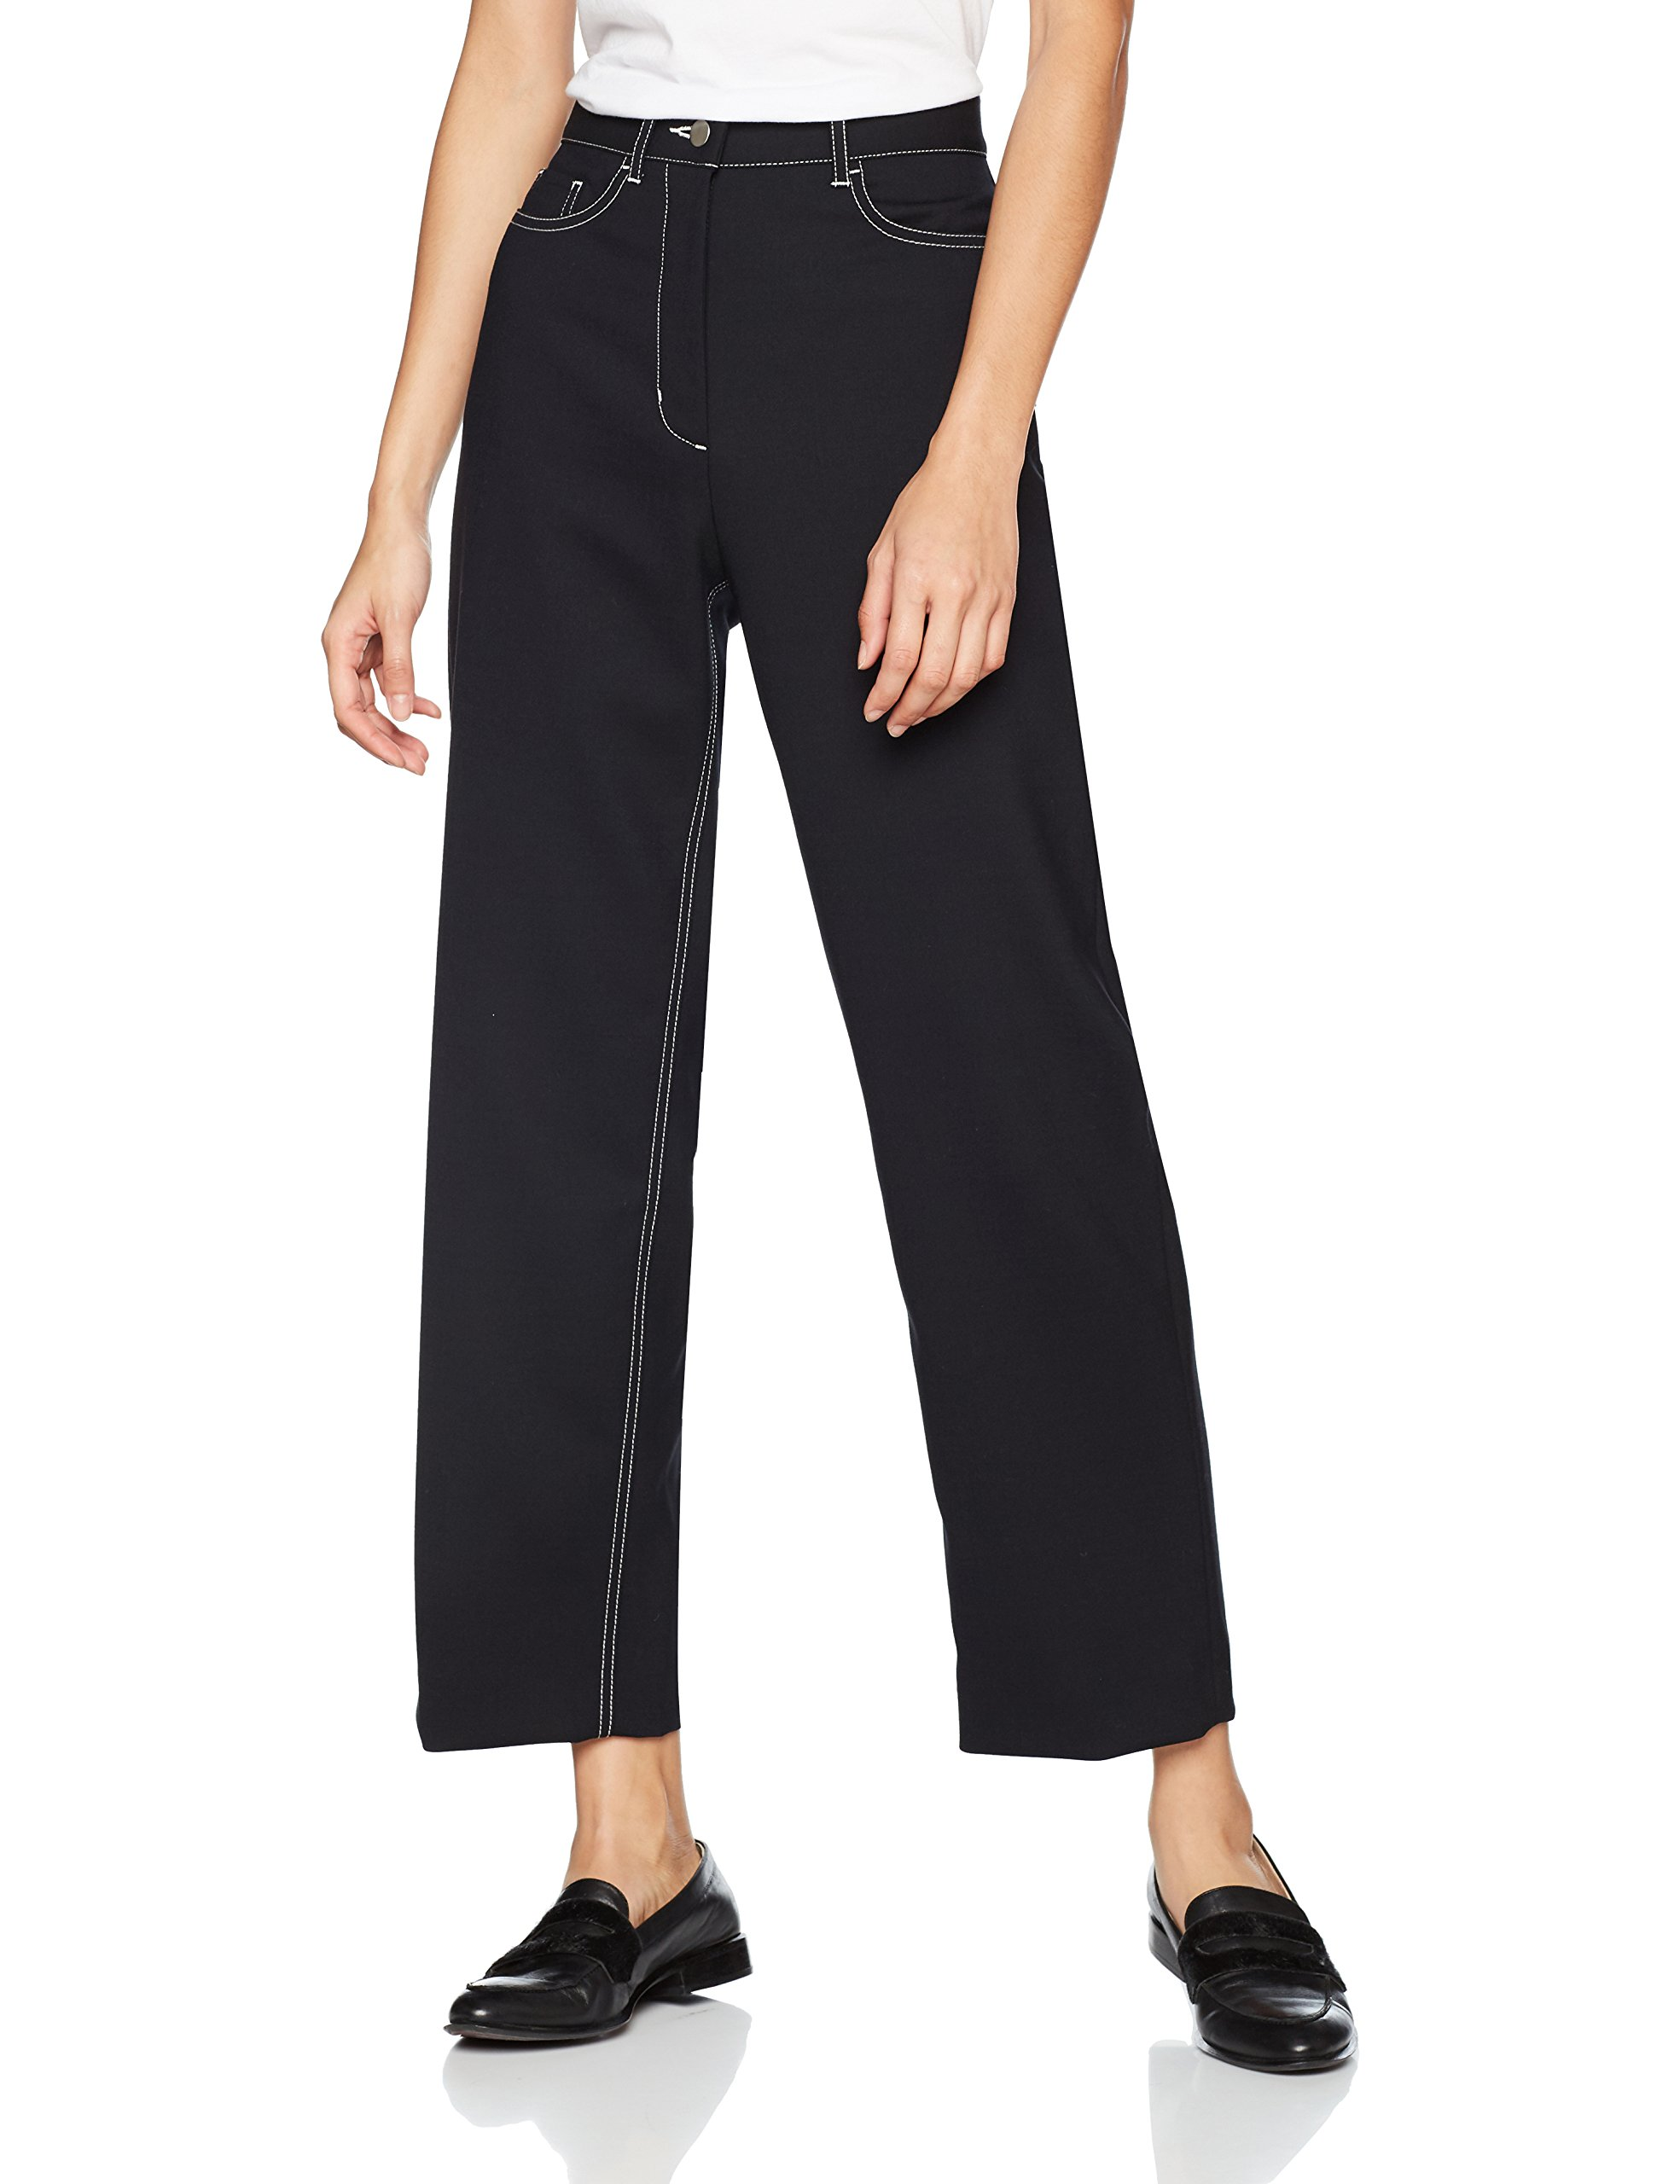 PantalonNoirblack38taille Fabricant36Femme Althea Trousers Trousers PantalonNoirblack38taille Fabricant36Femme Wood Althea Wood hQxrCstd